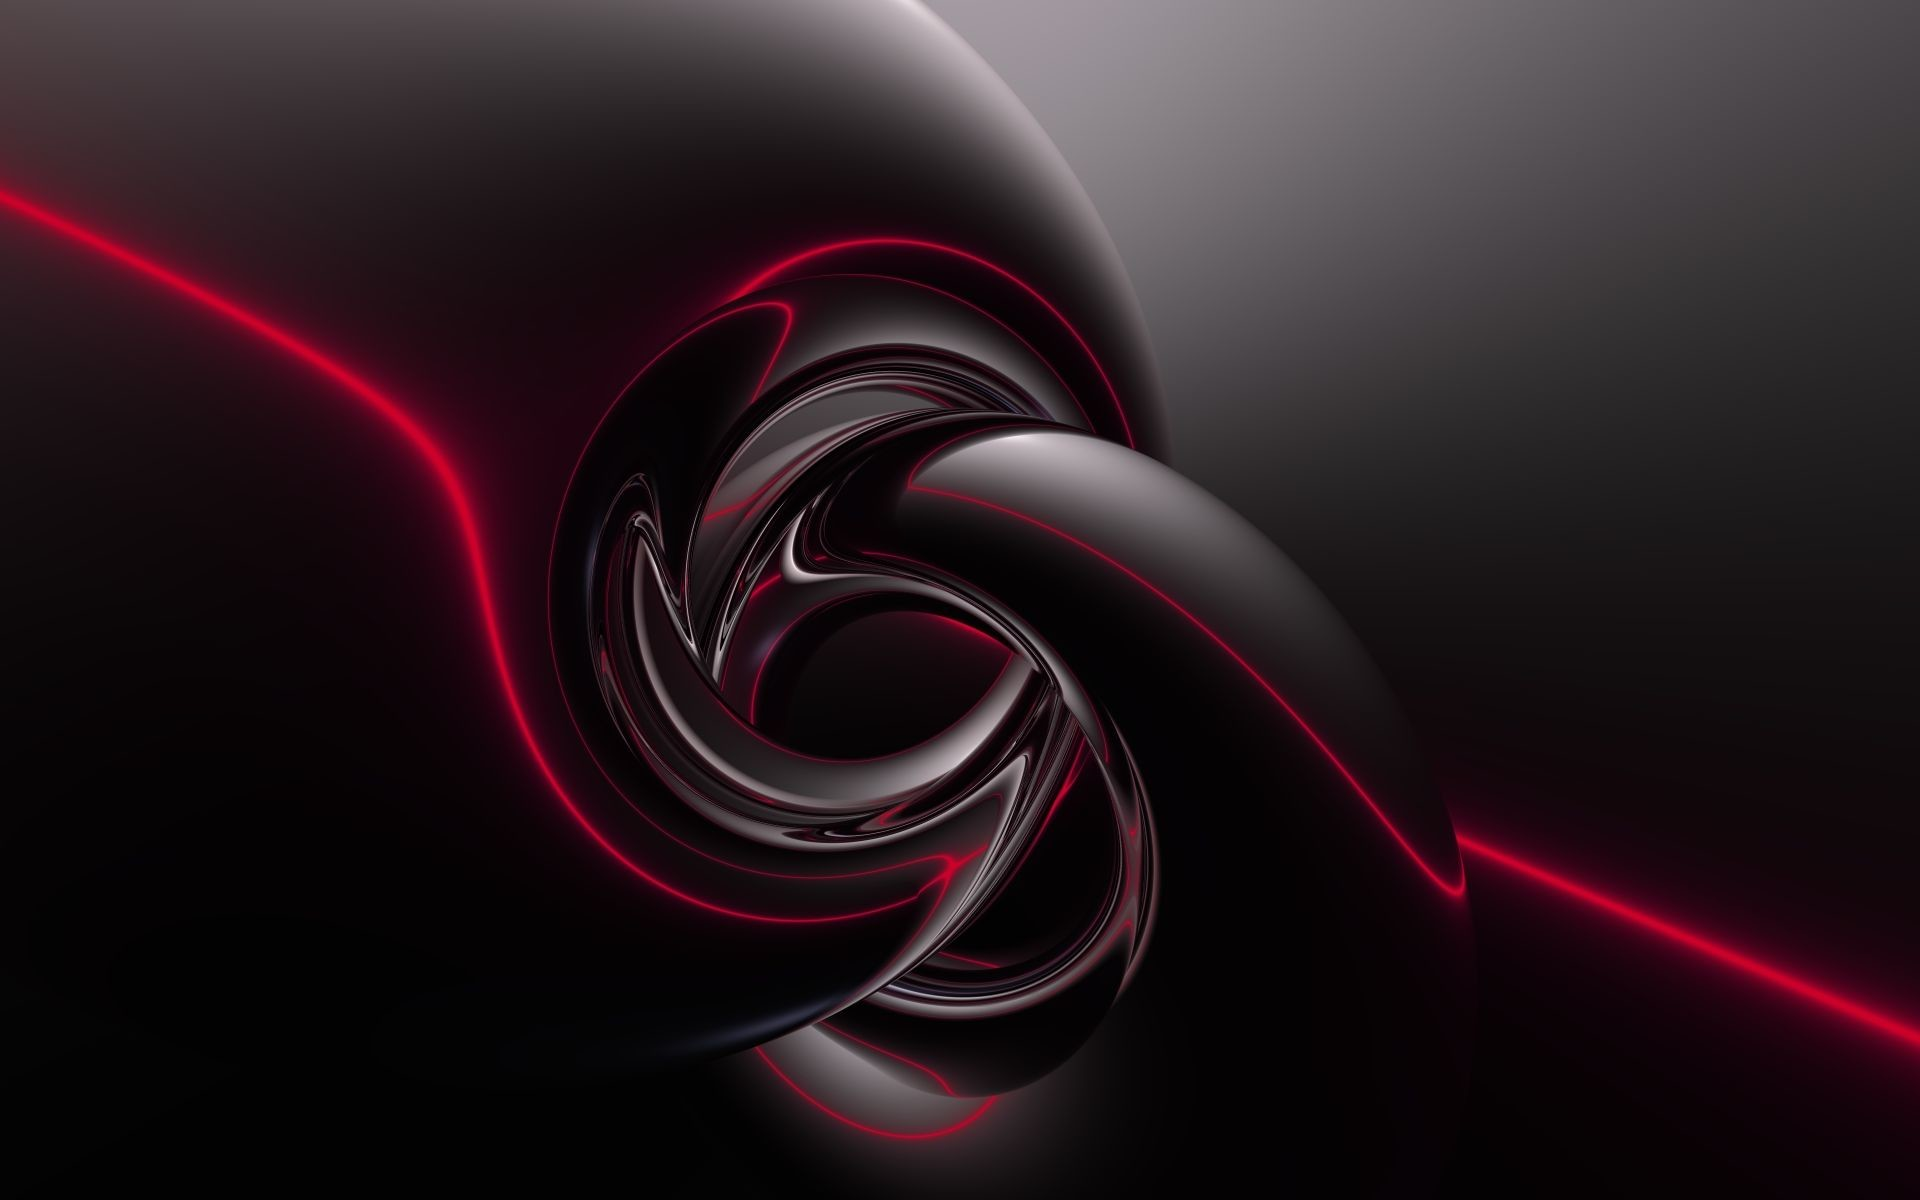 1920x1200 Black Red Abstract Wallpaper - ImgMob